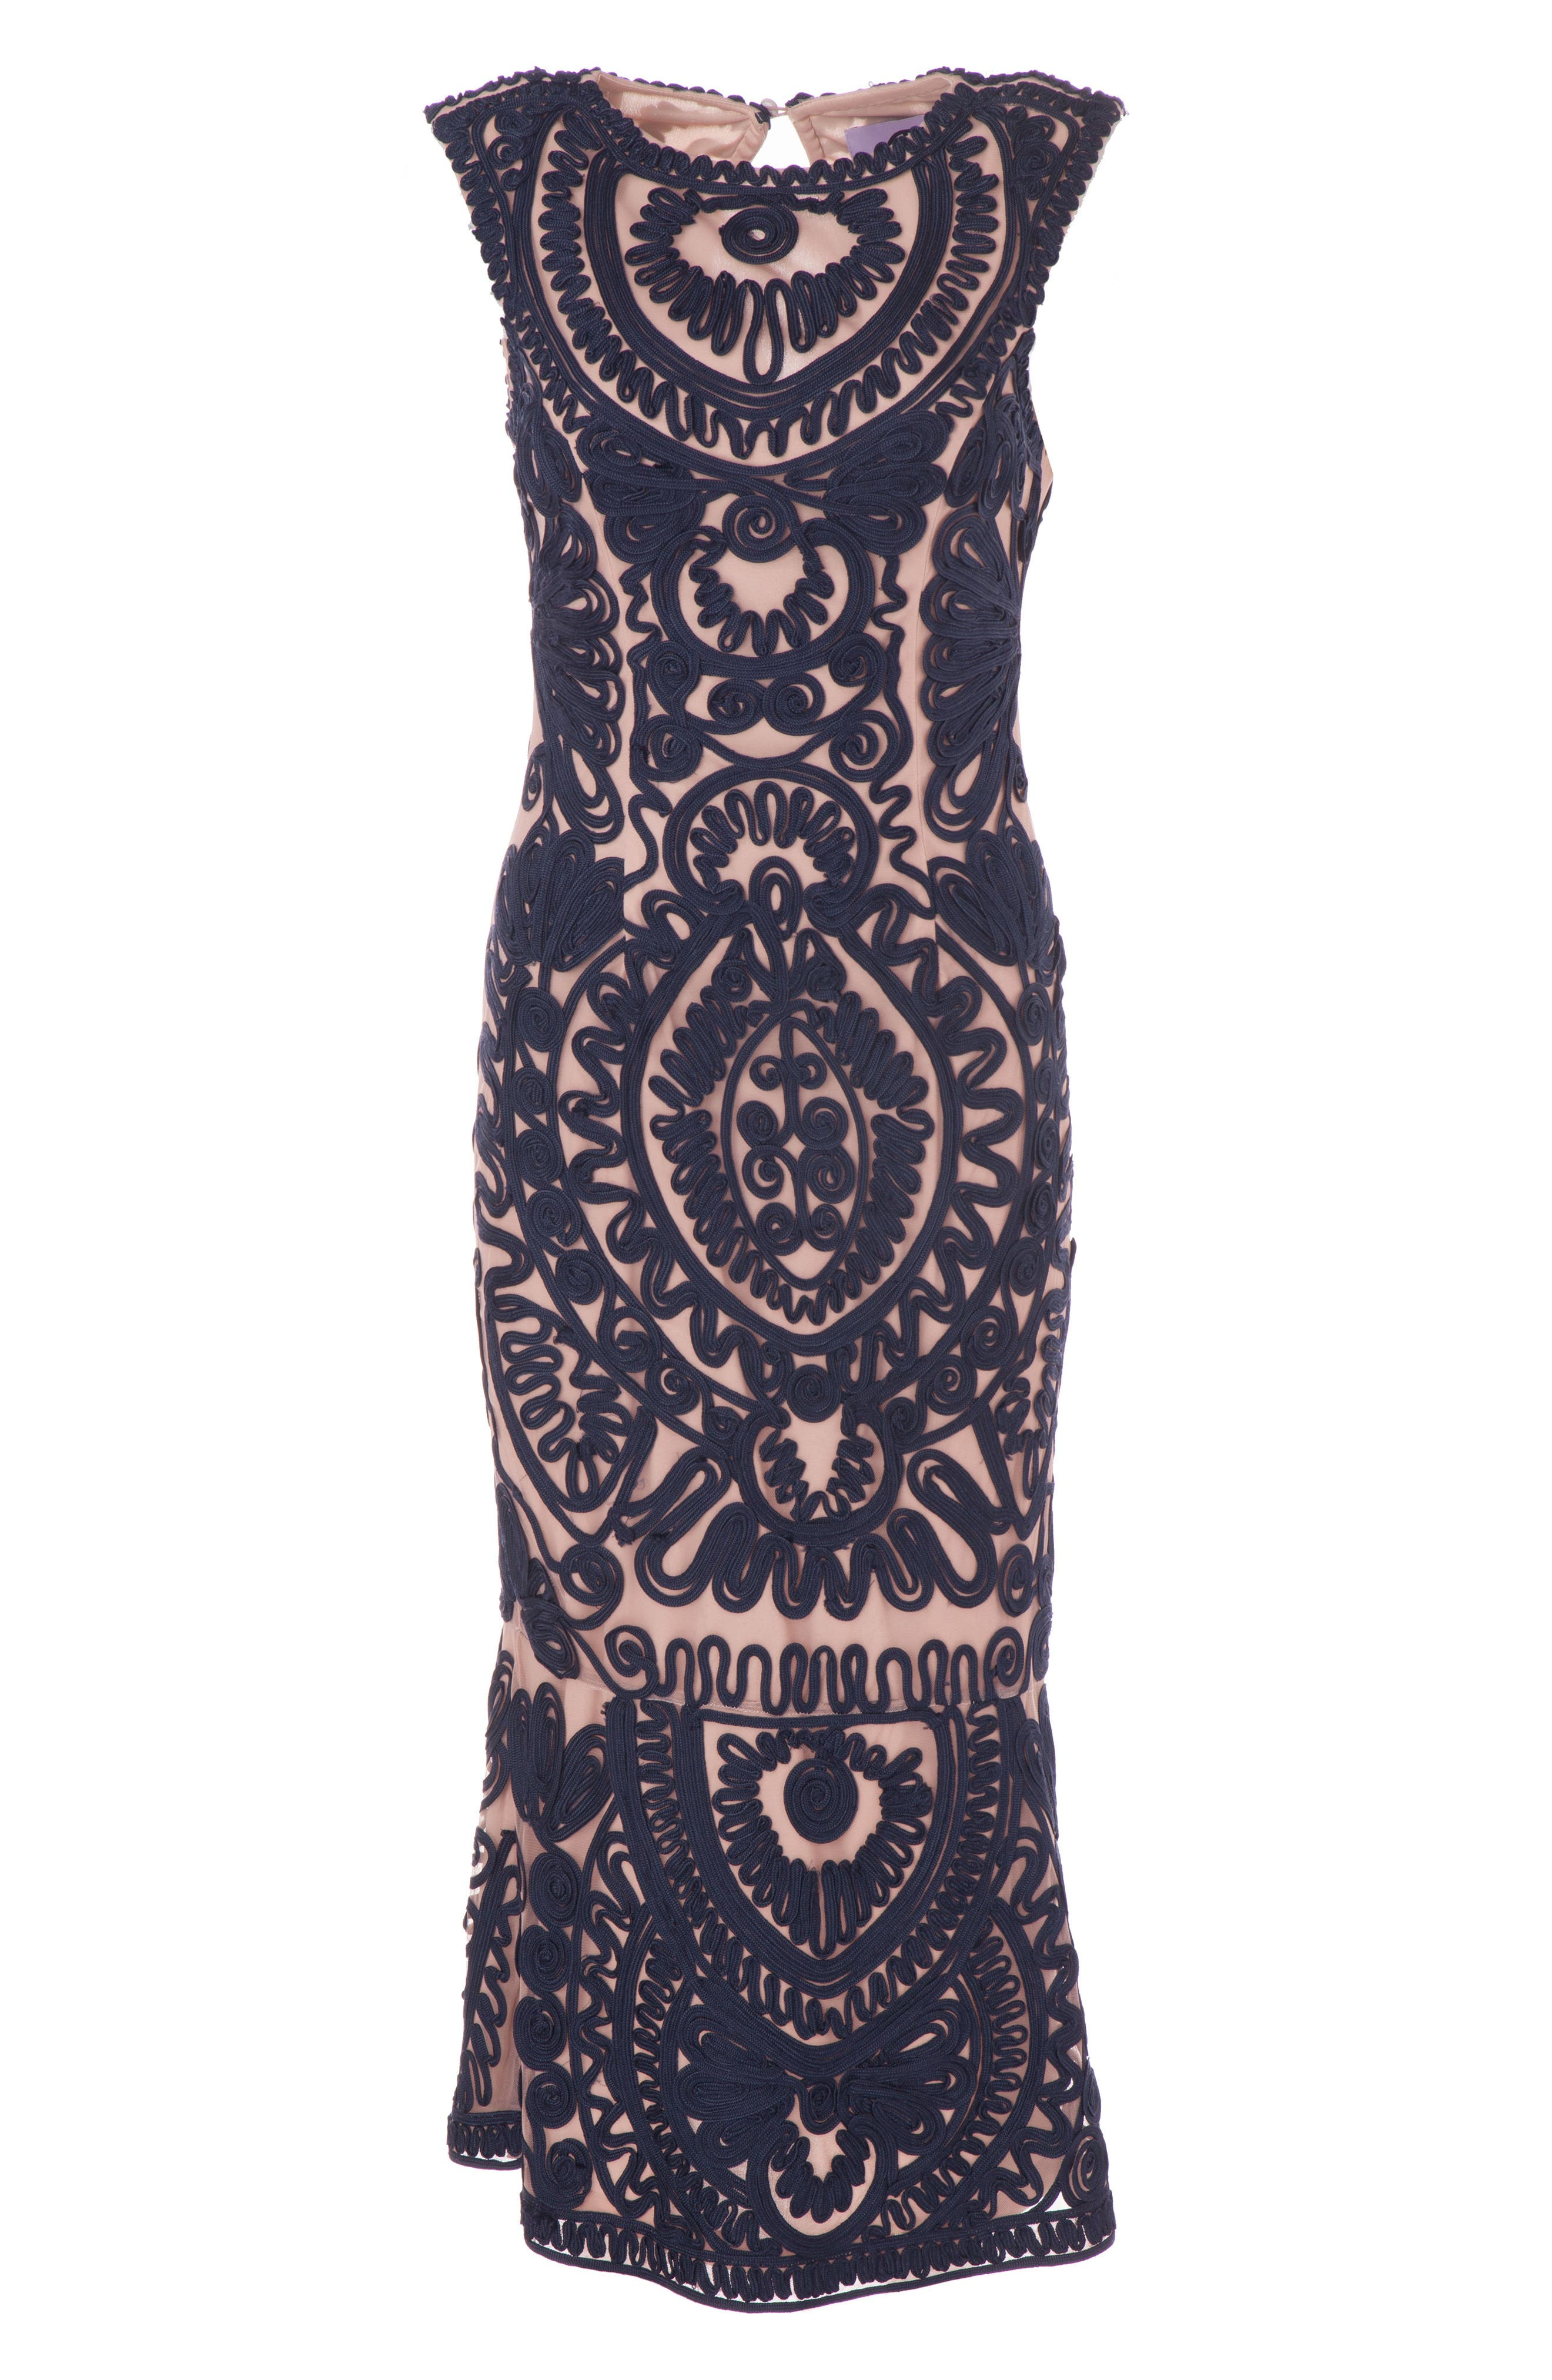 JS COLLECTIONS, Soutache Mesh Dress, Alternate thumbnail 3, color, NAVY/ NUDE